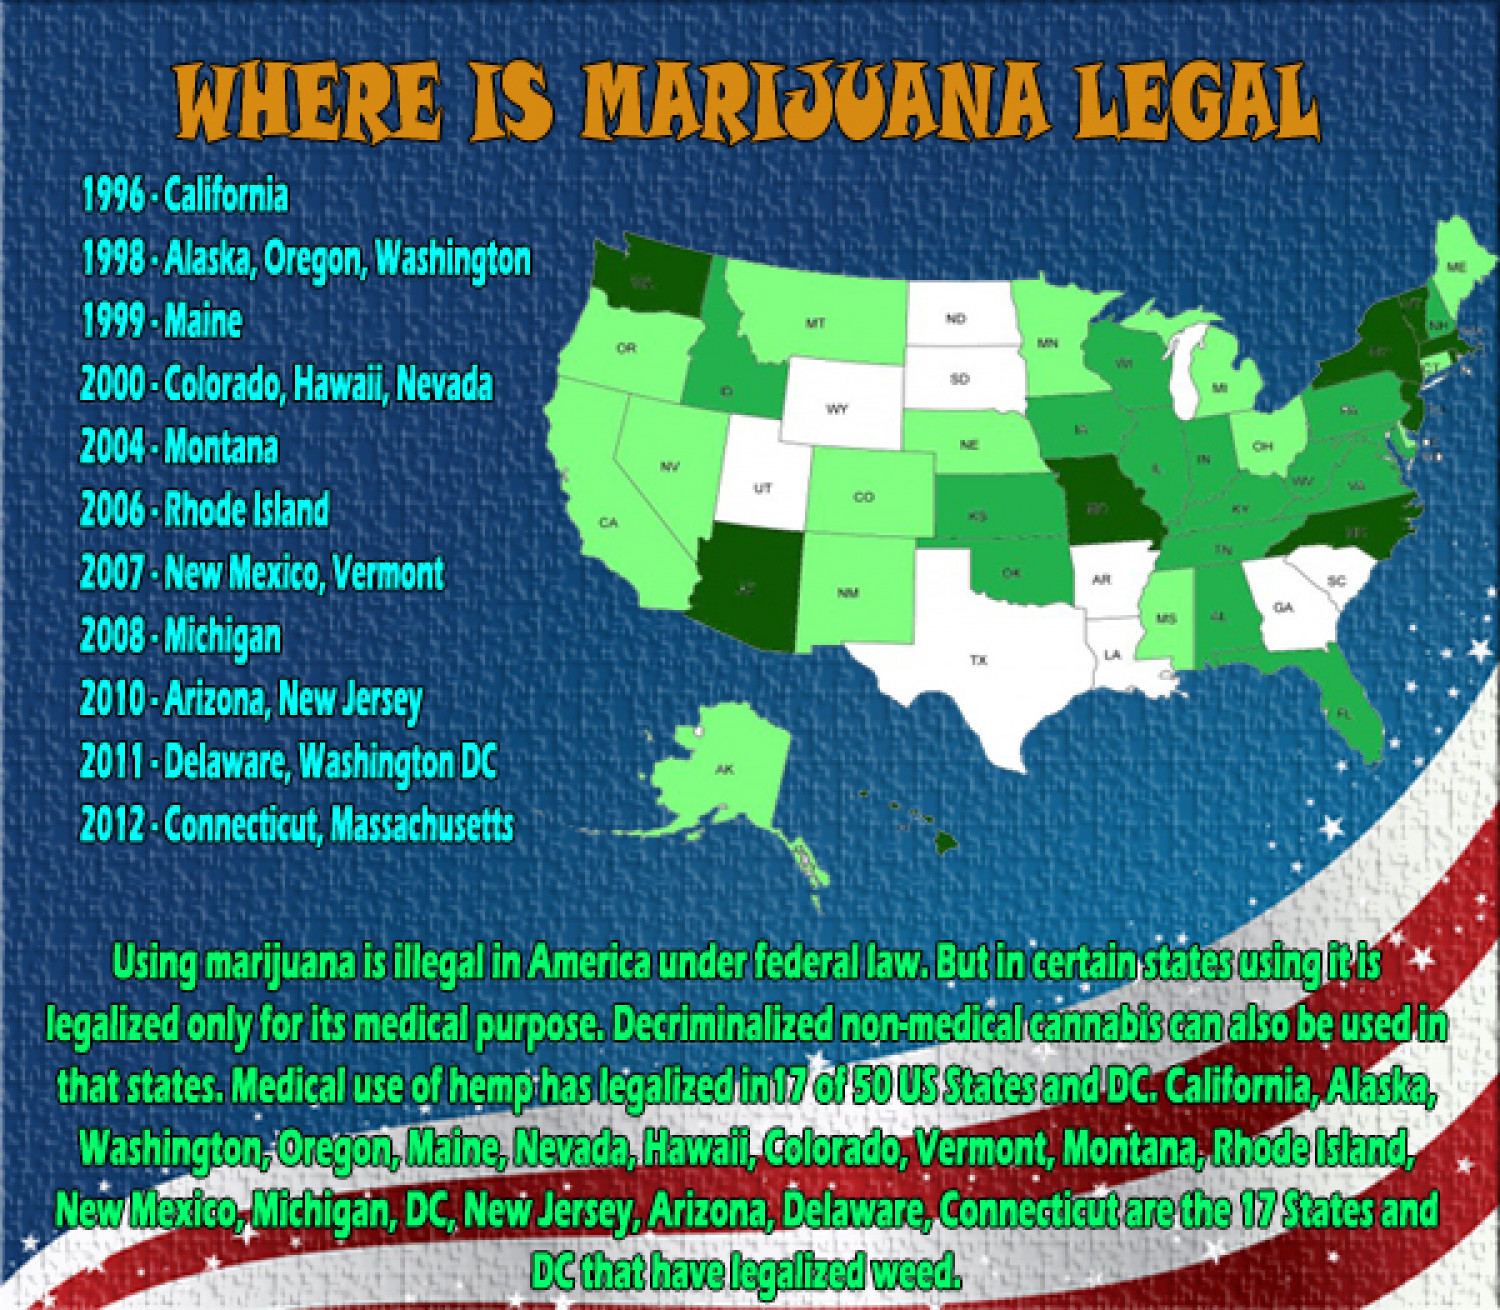 Where Is Marijuana Legal Infographic